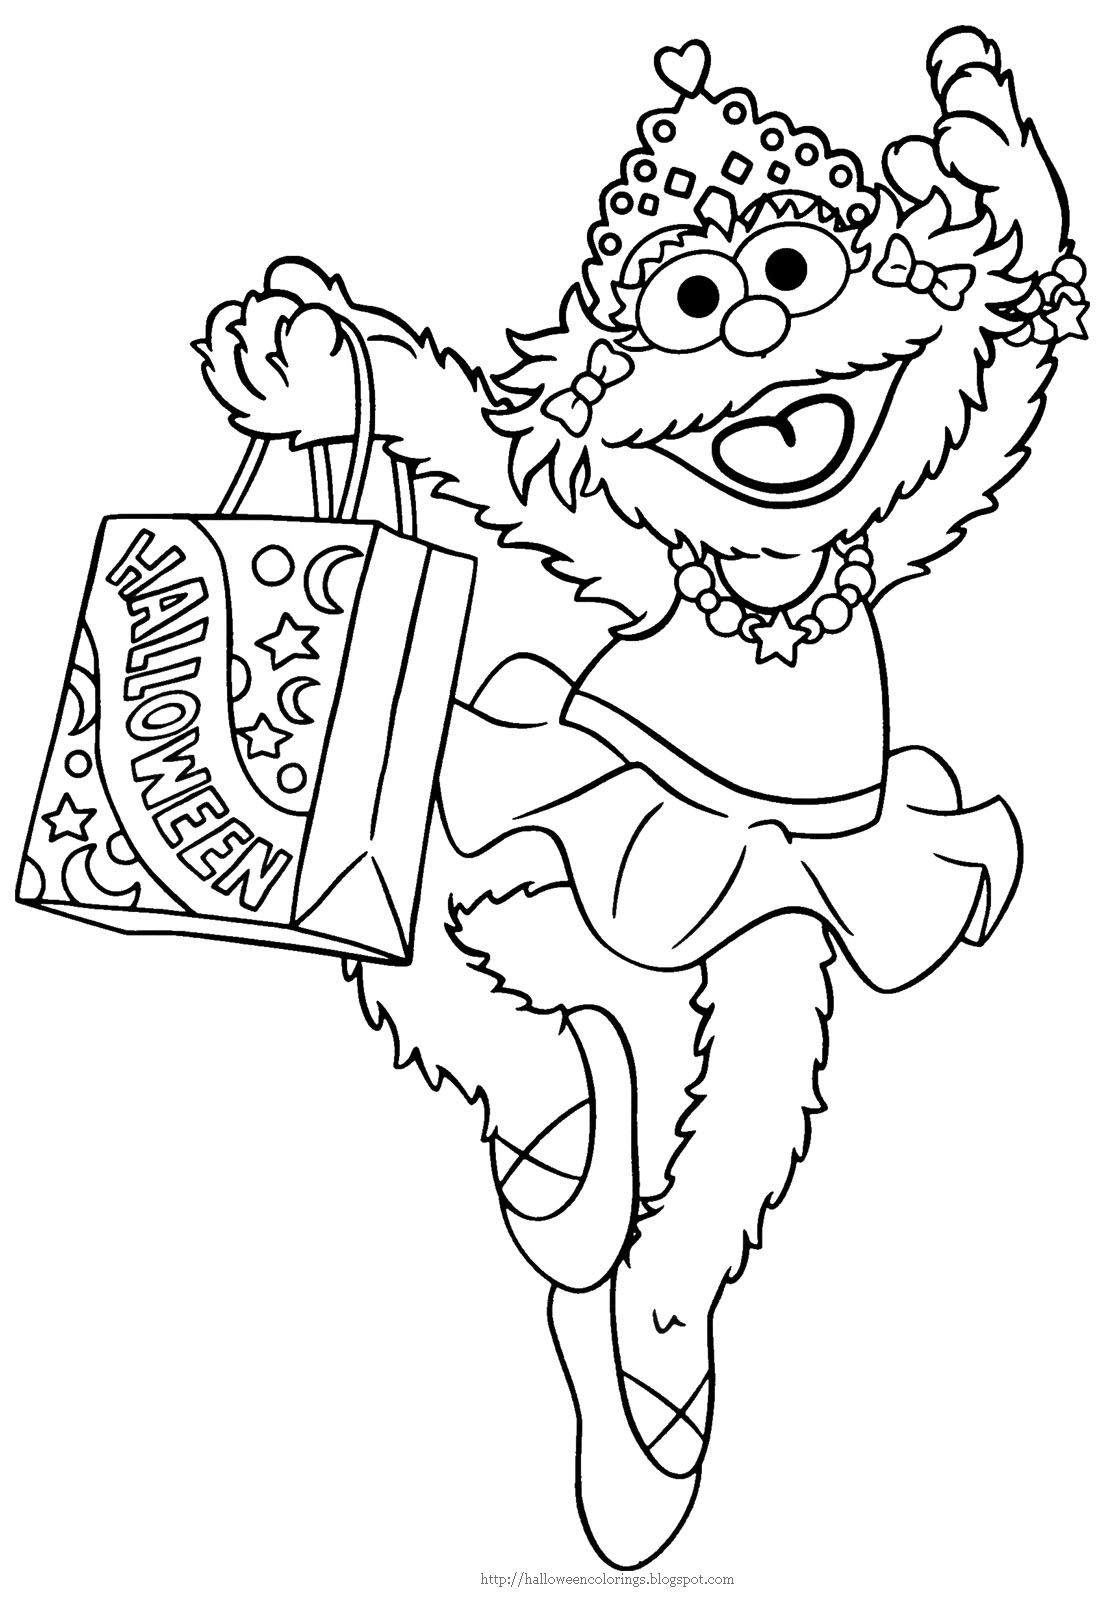 zoe sesame street coloring pages - photo#3